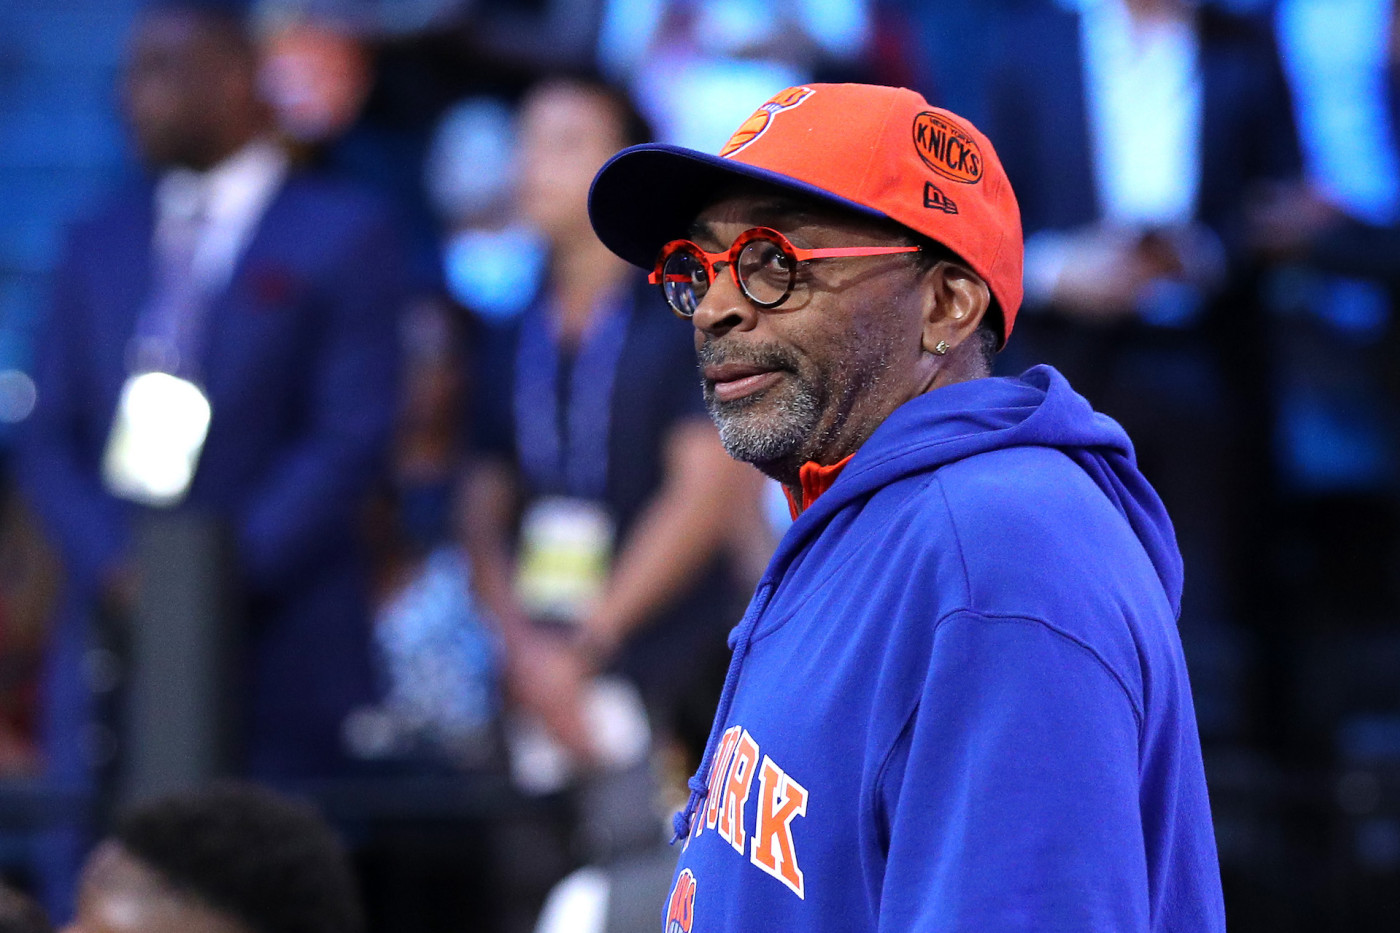 Spike Lee looks on before the start of the 2019 NBA Draft at the Barclays Center.